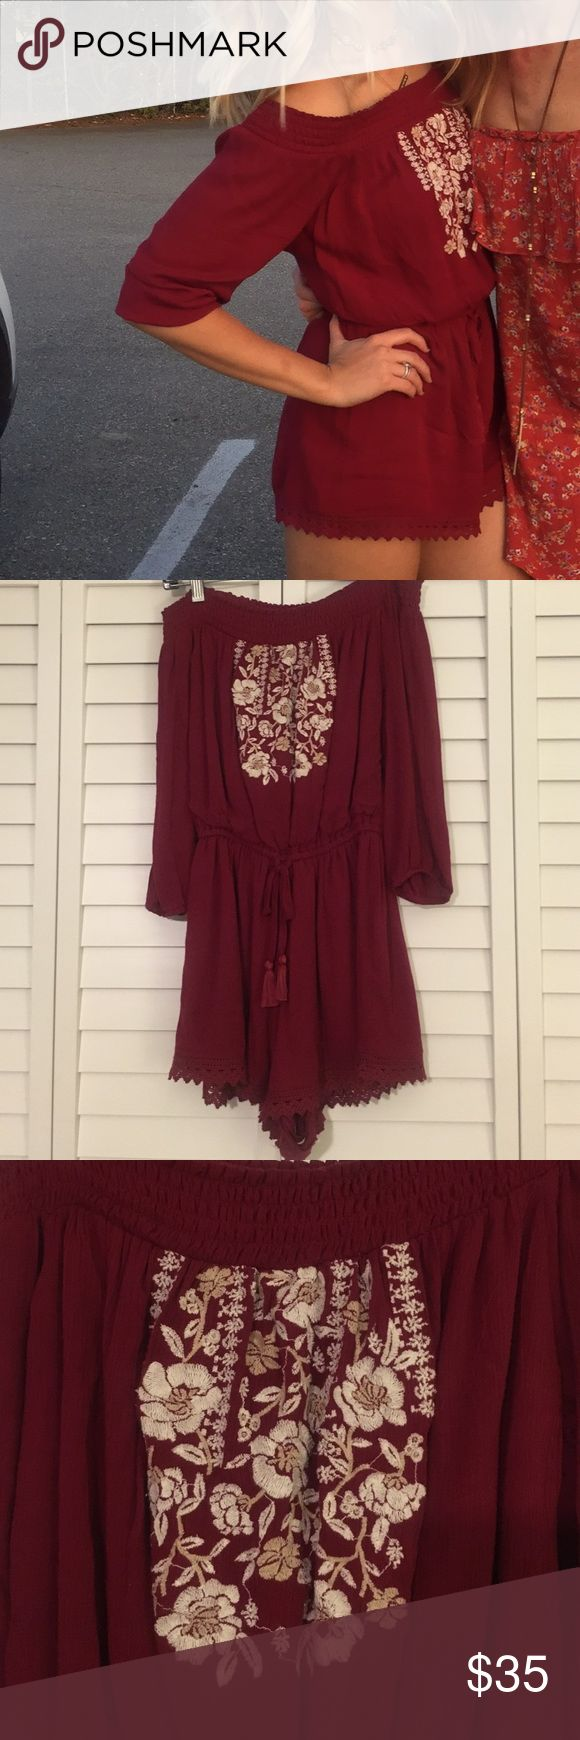 Red romper from A&F Adorable off the shoulder red romper from A&F! Only worn 3 times! Paired once with cowgirl boots for a country concert, also worn with sandals at a baseball game! Abercrombie & Fitch Dresses